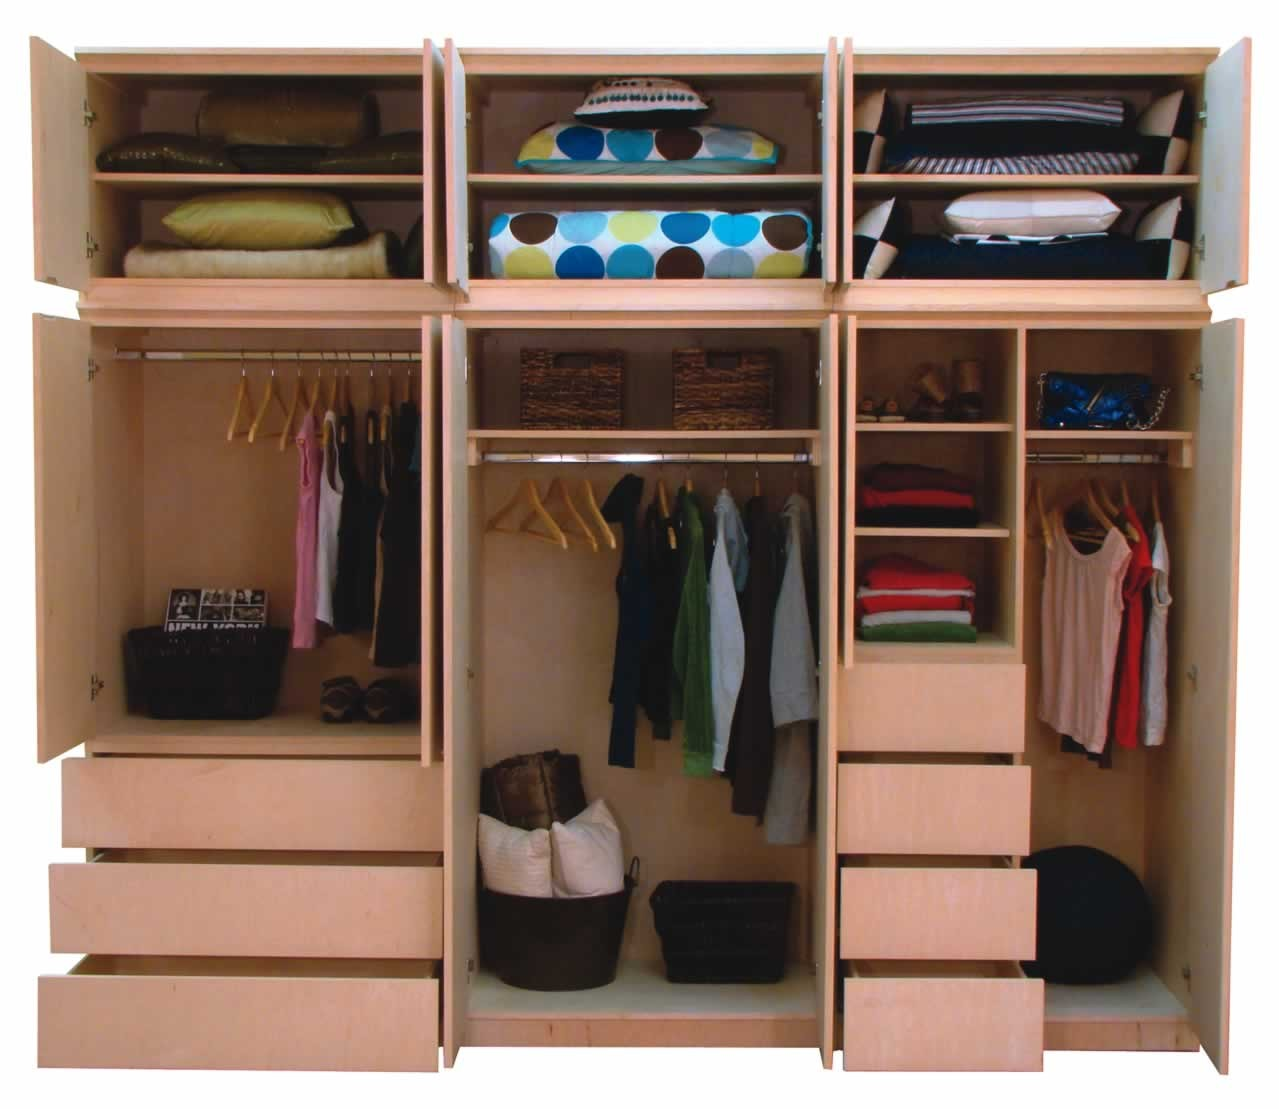 Stunning Wooden Closet Organizer For Small Closet With Pillows Hangers And  Drawers And Small Drawers